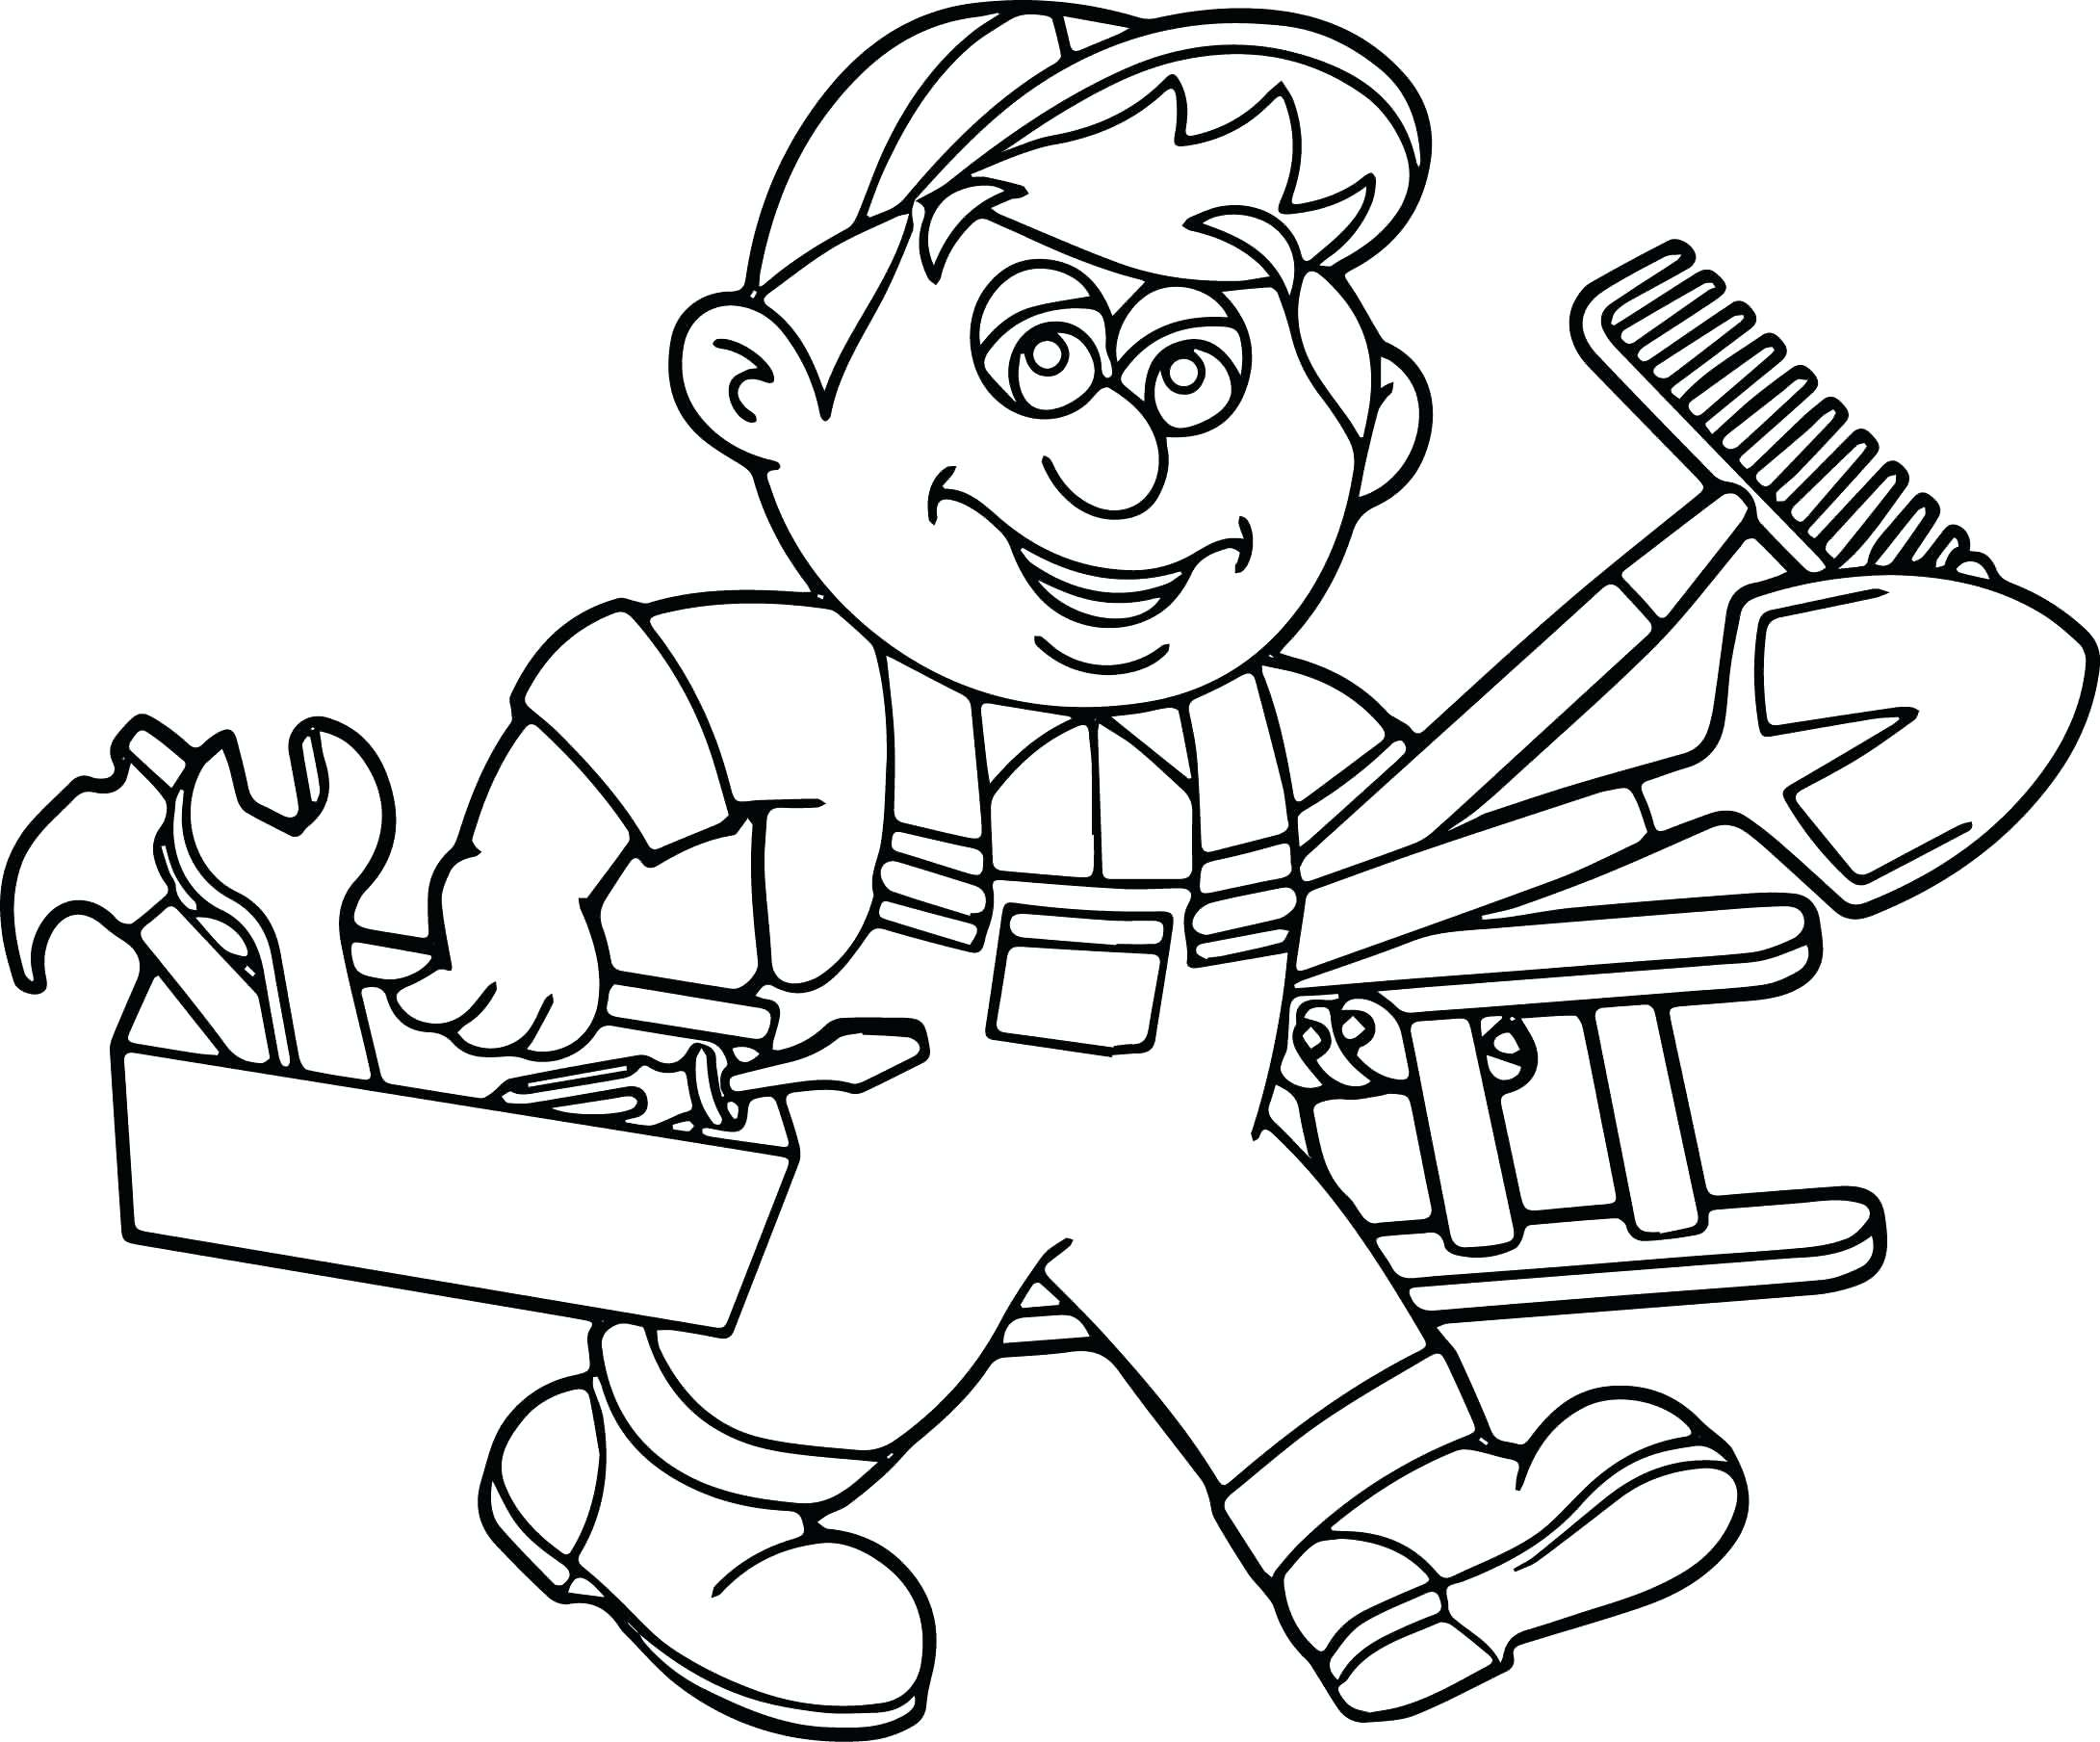 carpenter tools coloring pages - photo#22